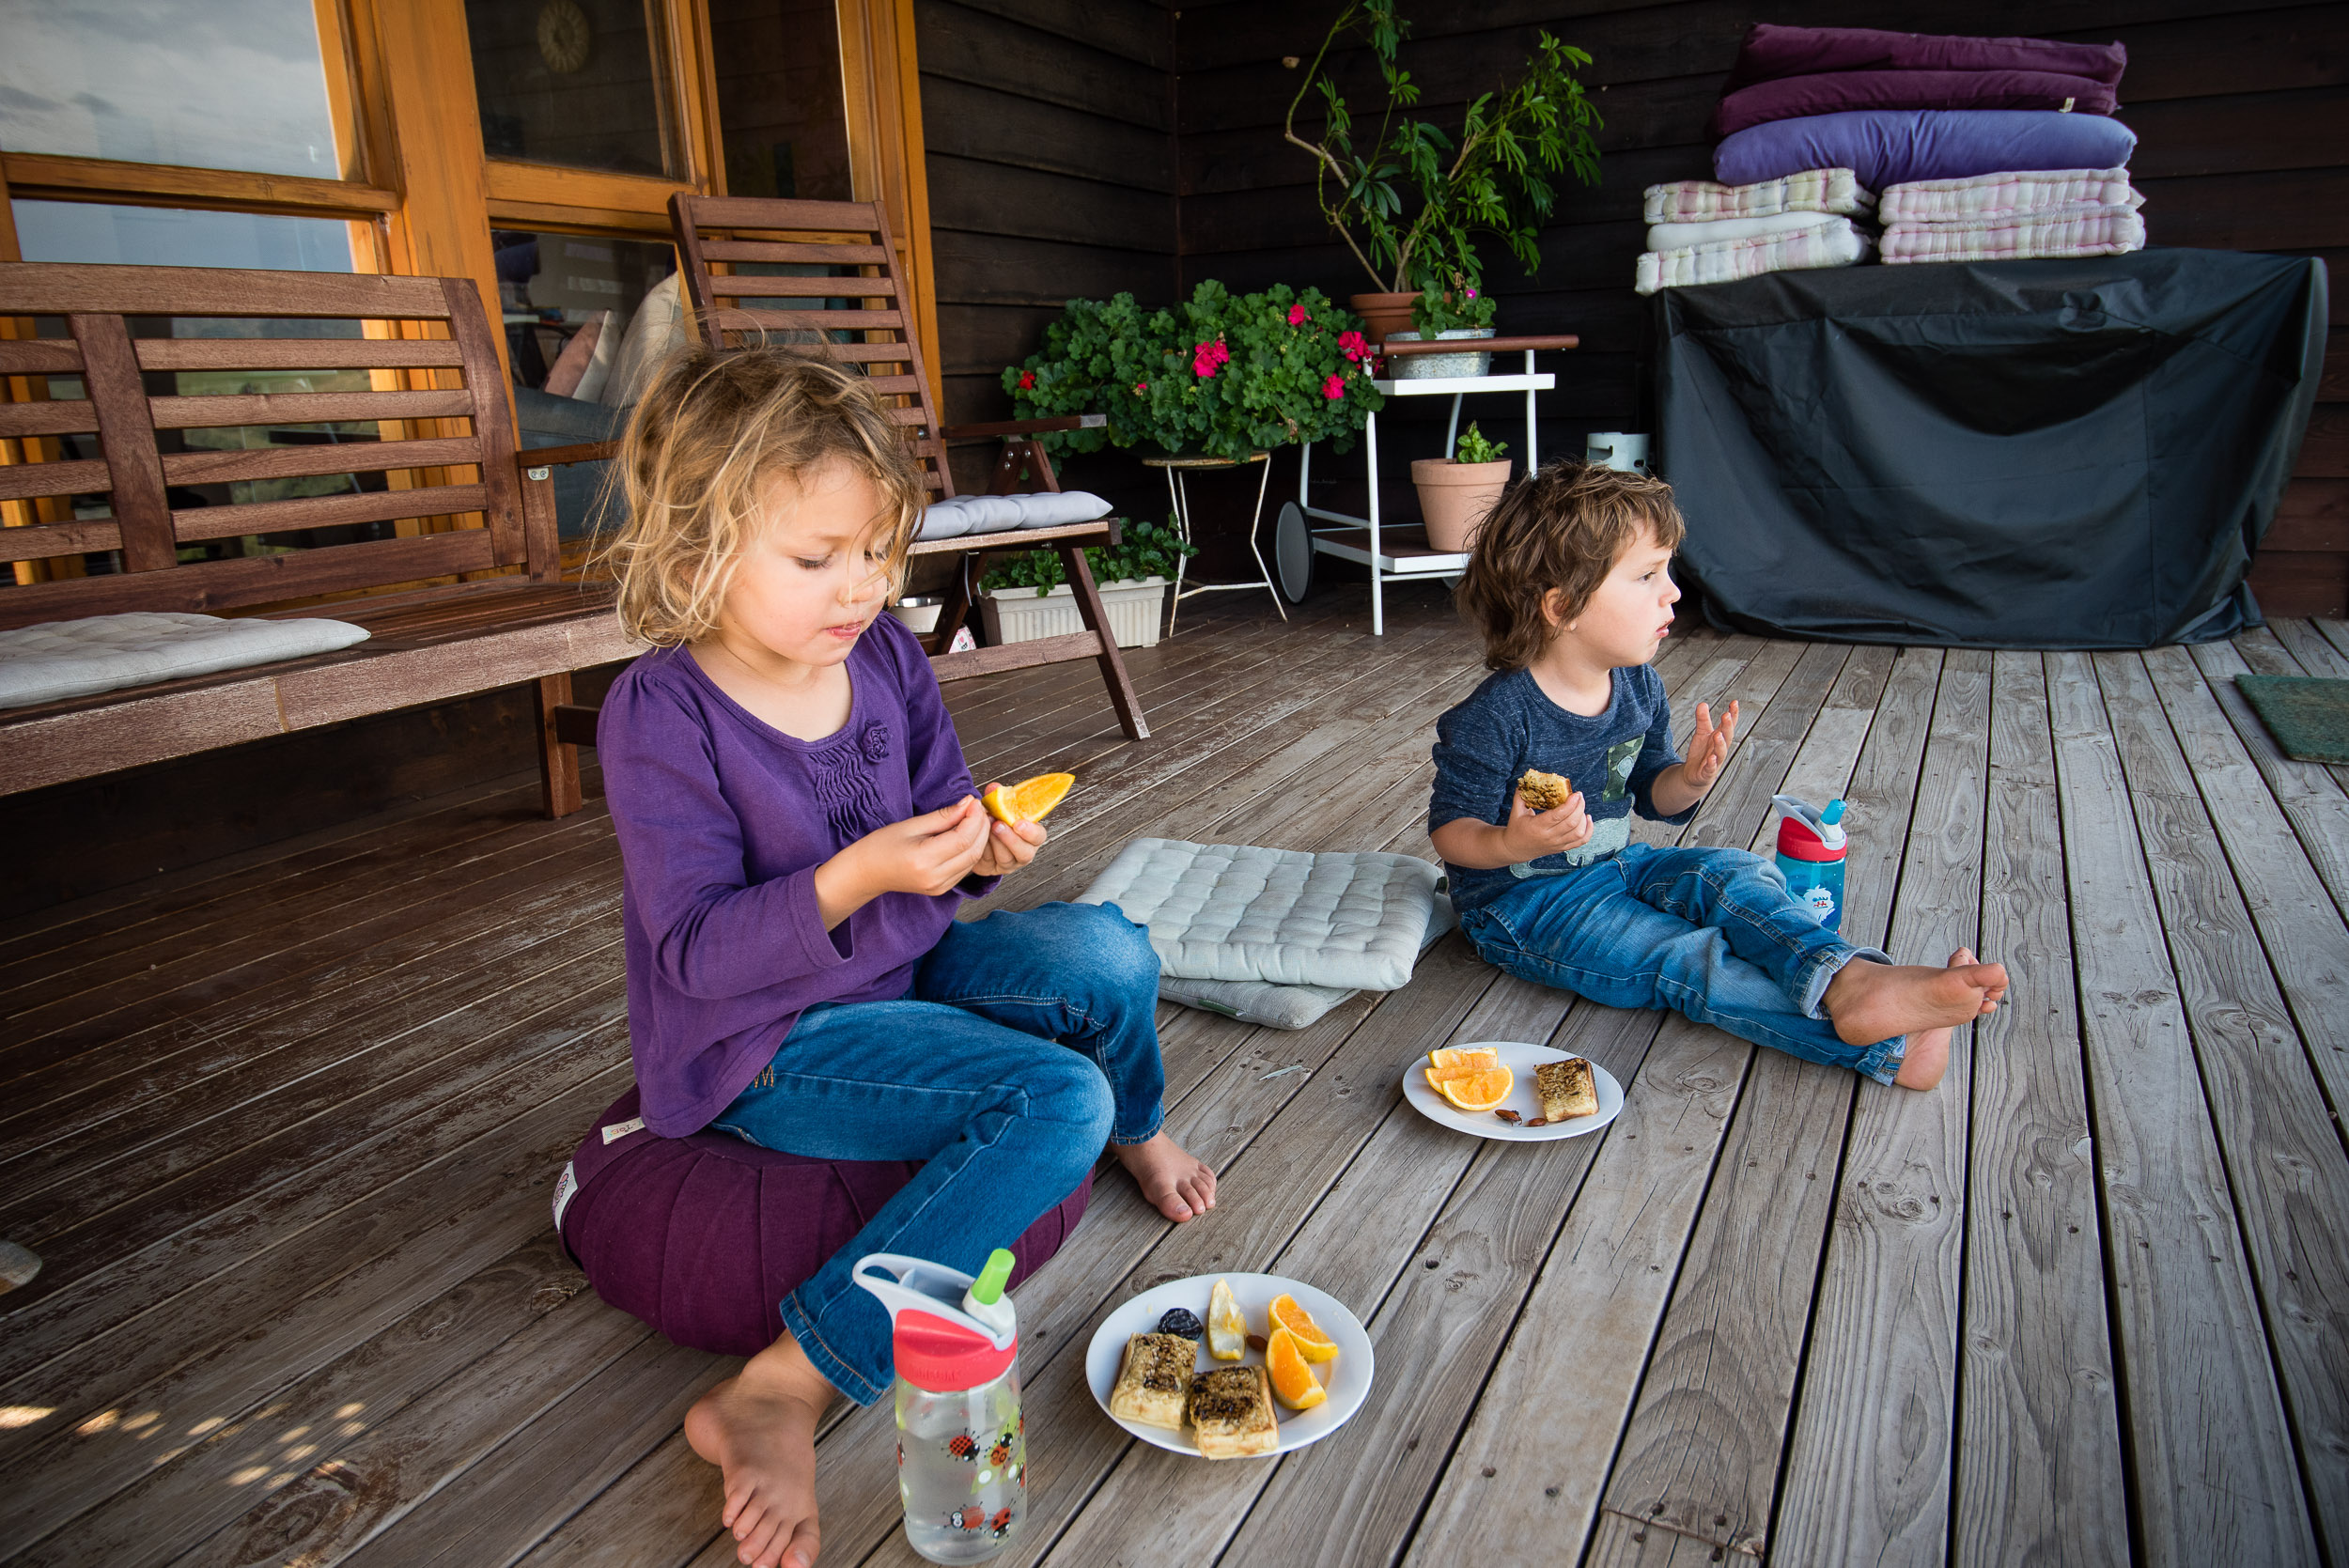 Snack time on the aweome deck at The Farm, Little Hartley.